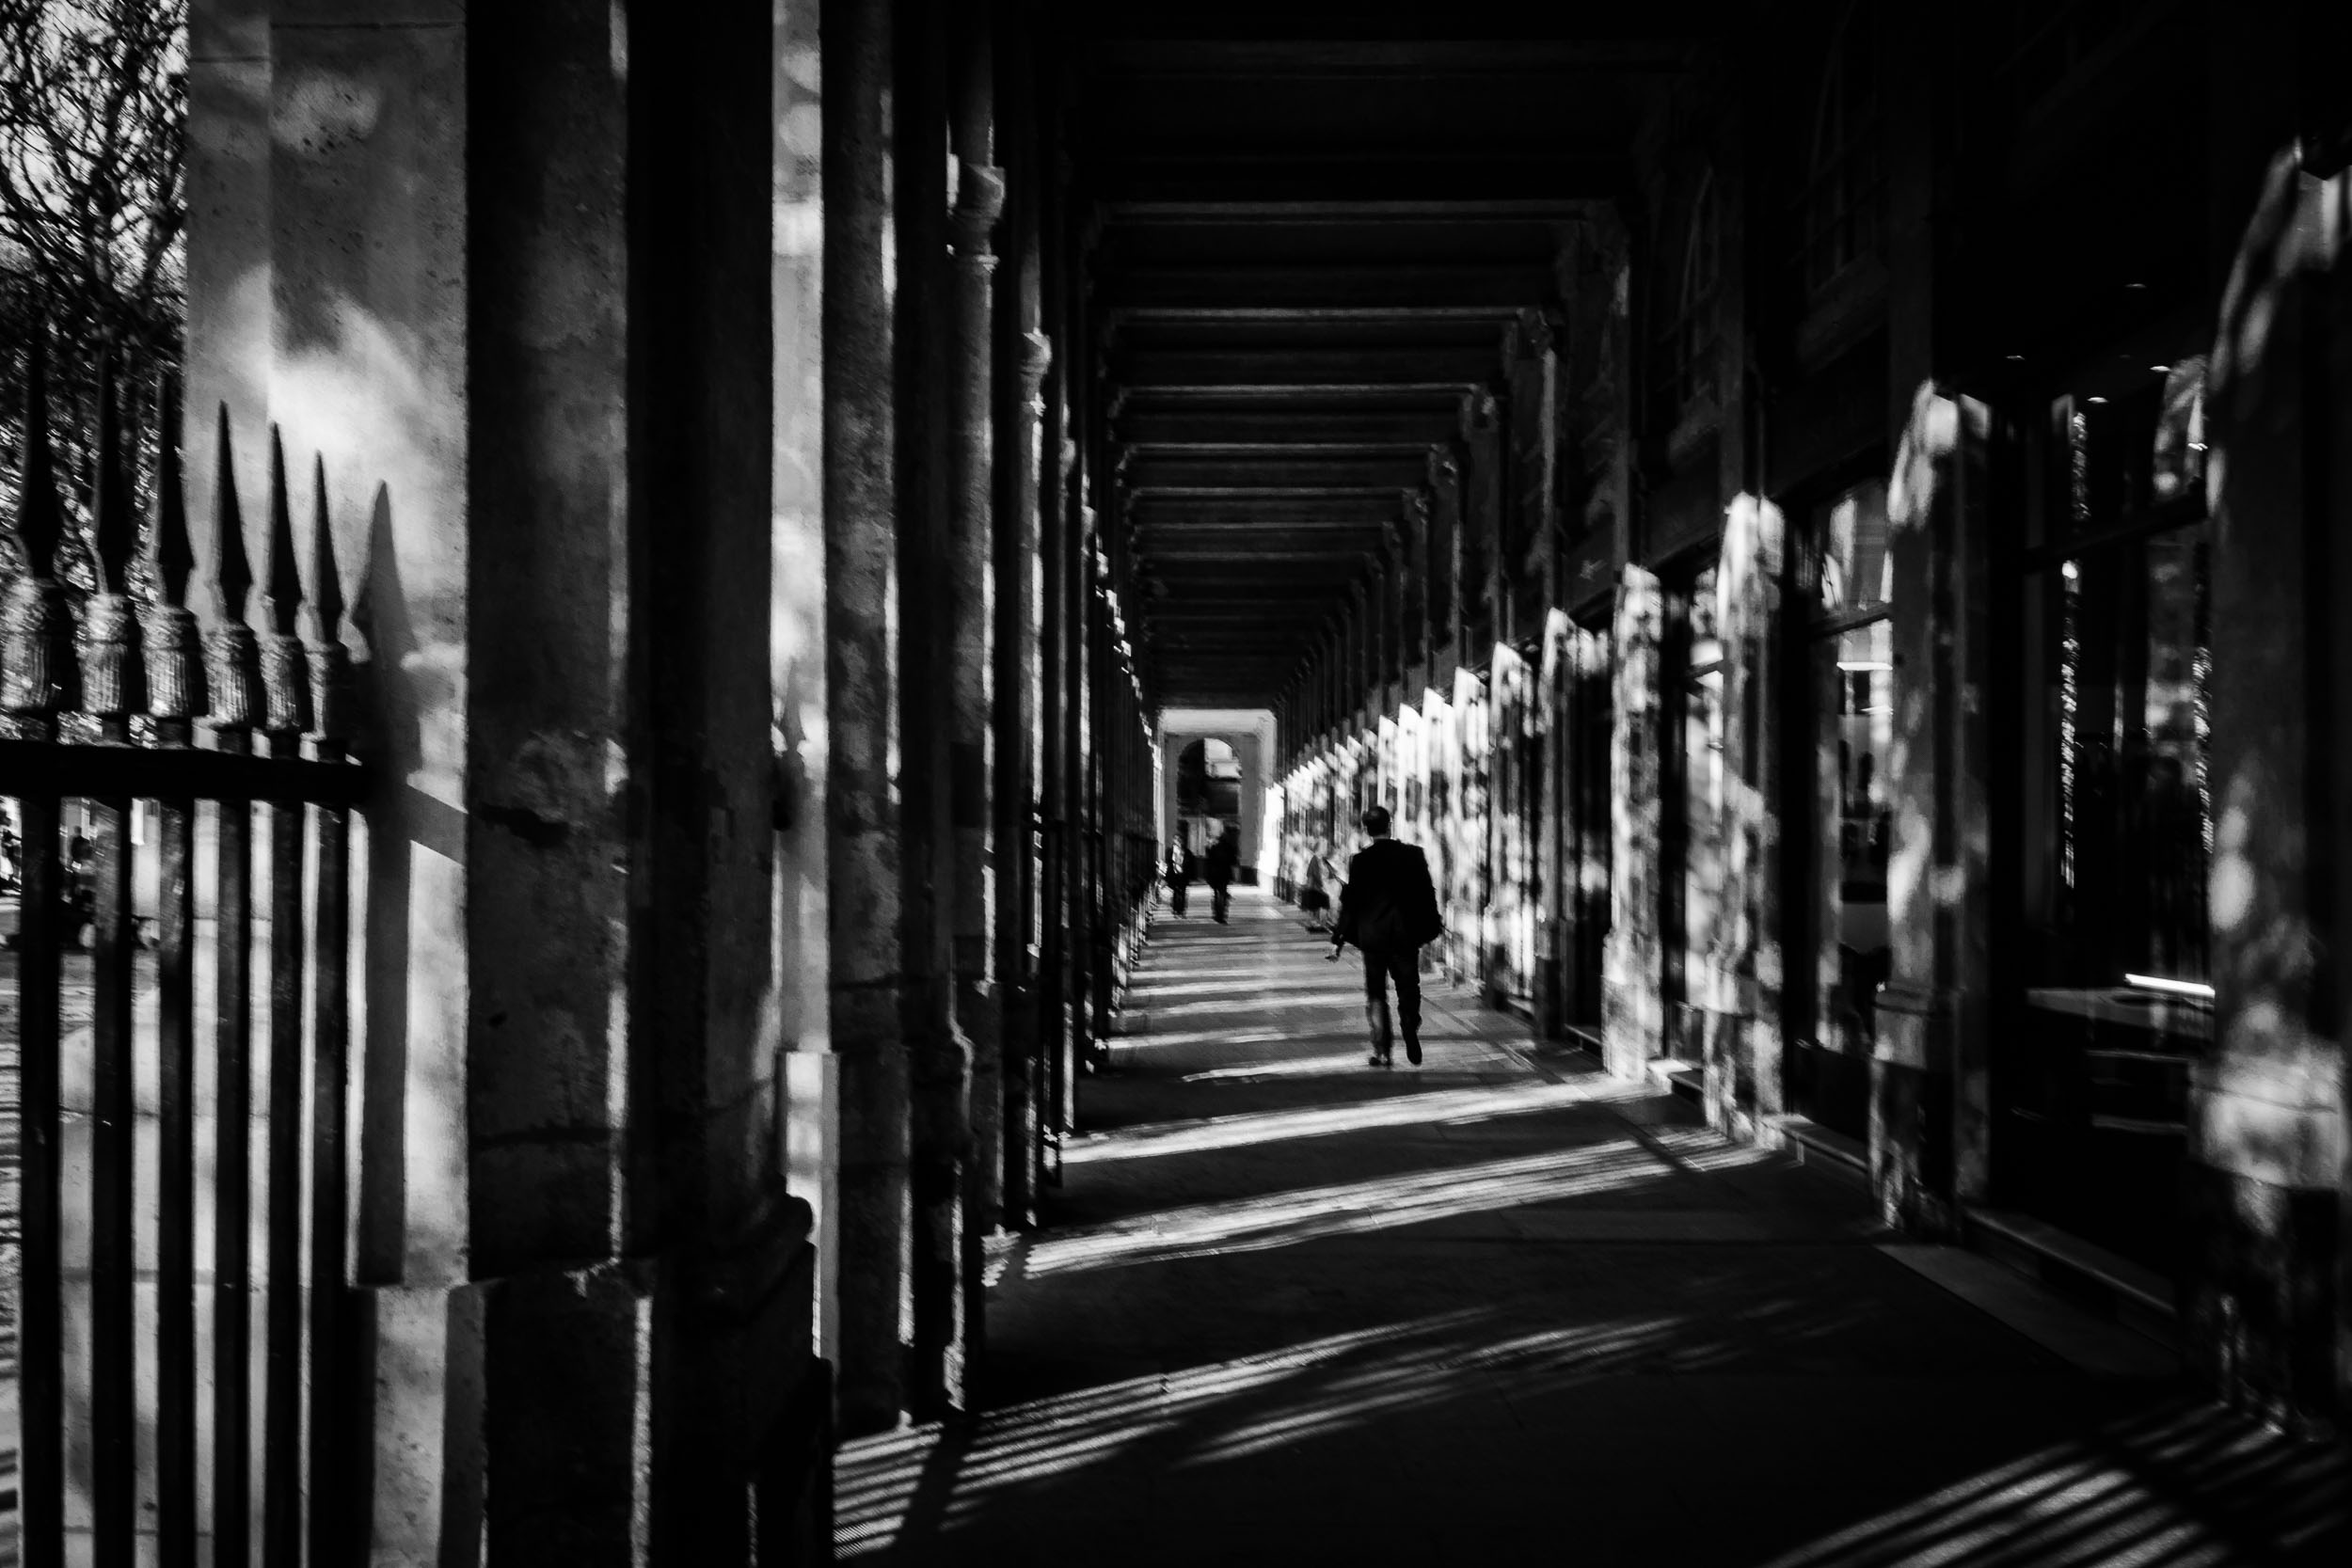 Paris-palais-royal-man-walking-in-shadows.jpg